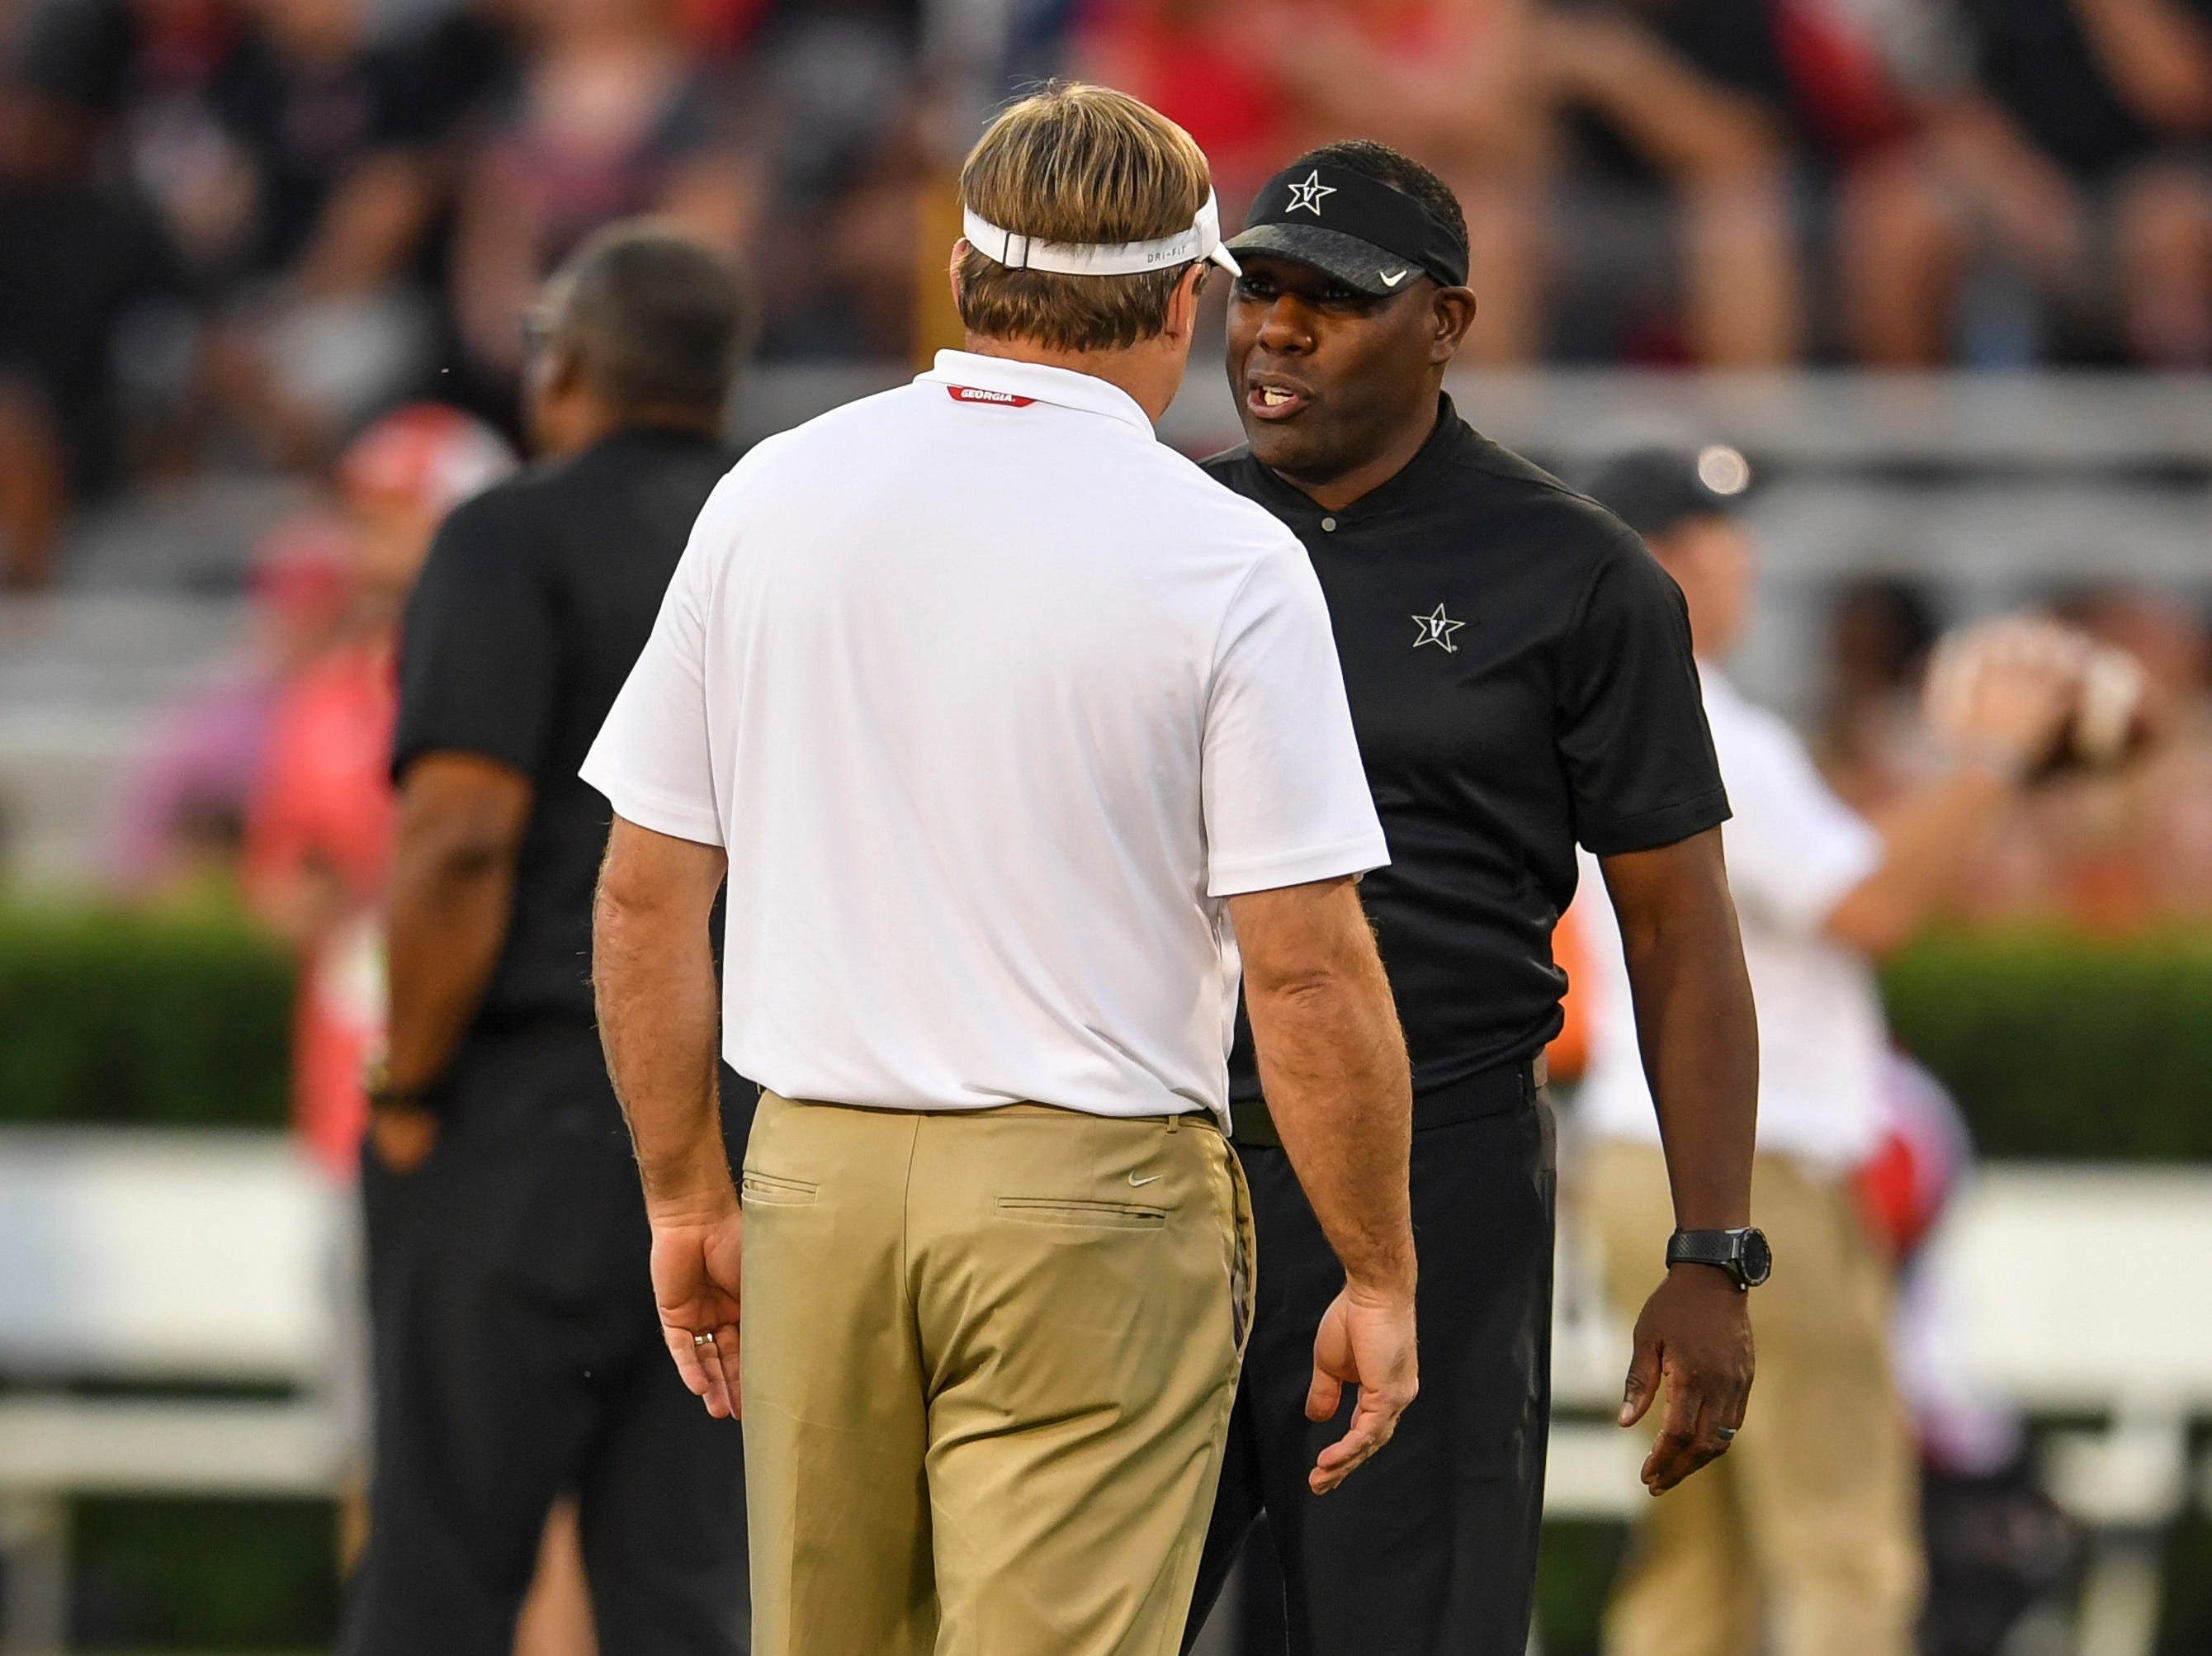 Oct 6, 2018; Athens, GA, USA; Georgia Bulldogs head coach Kirby Smart (left) talks to Vanderbilt Commodores head coach Derek Mason on the field prior to the game at Sanford Stadium. Mandatory Credit: Dale Zanine-USA TODAY Sports